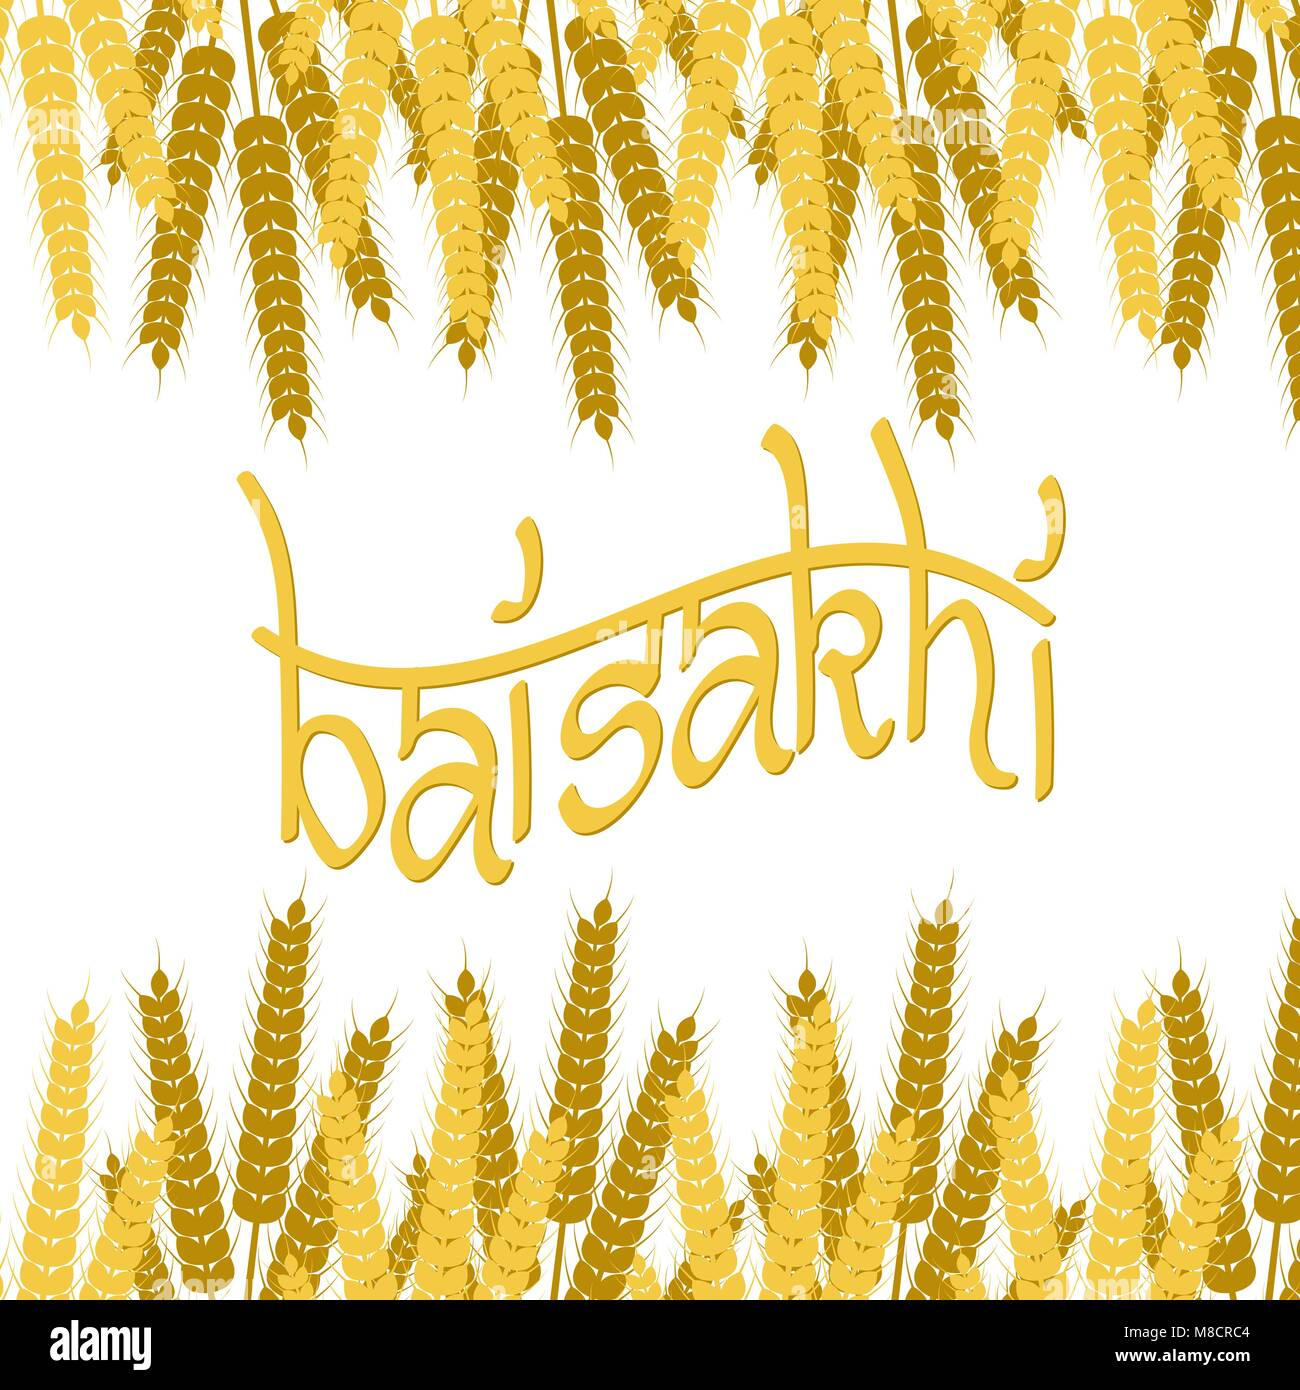 Holiday Baisakhi. New Year of the Sikhs. Bunchs of Wheat. Up and down. Lettering name of the holiday - Stock Vector